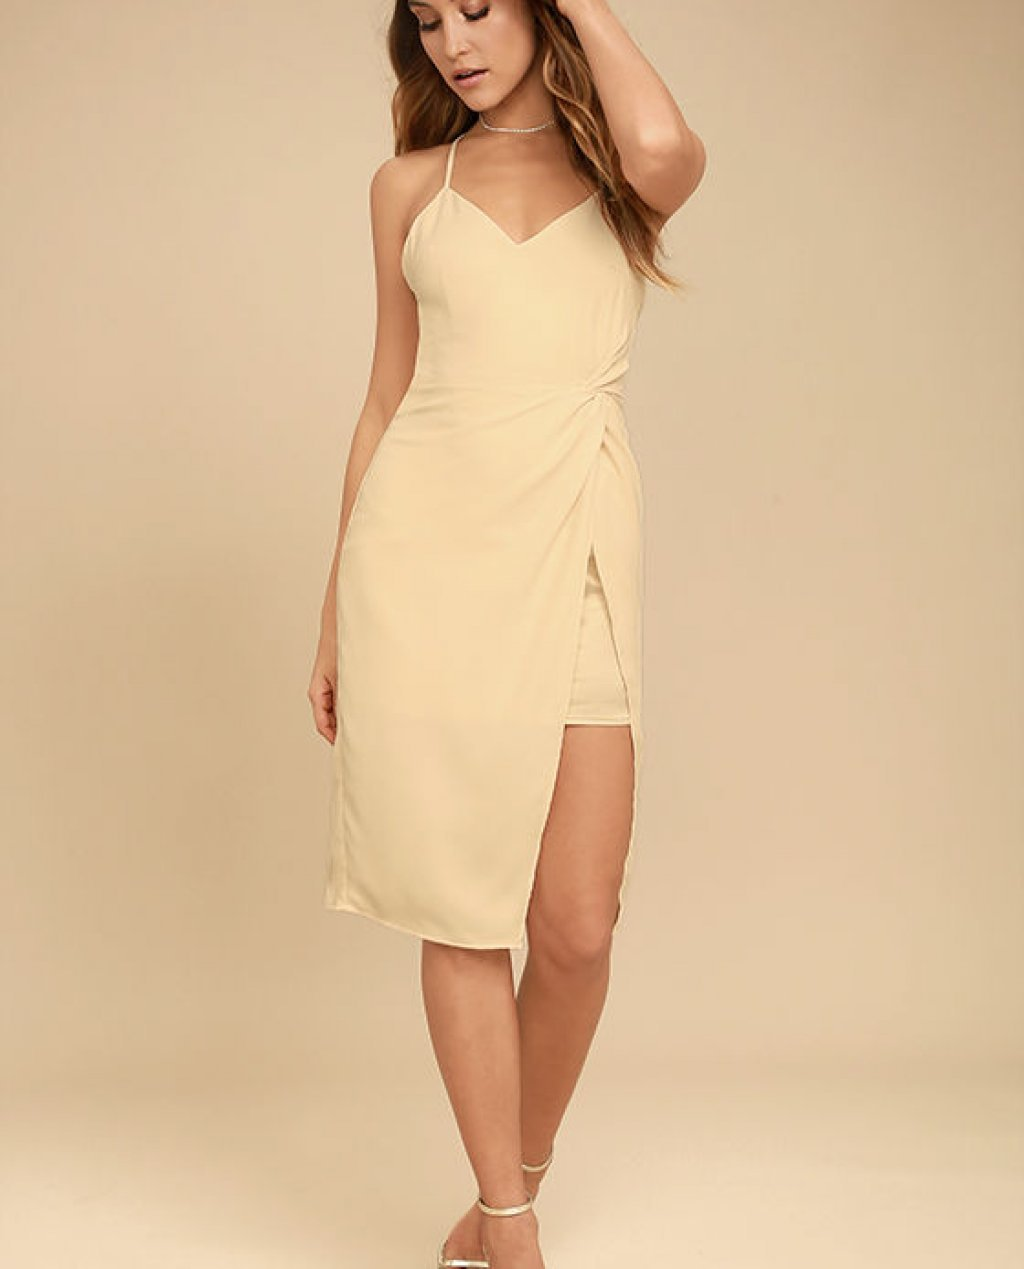 Making Eyes At You Beige Midi Dress